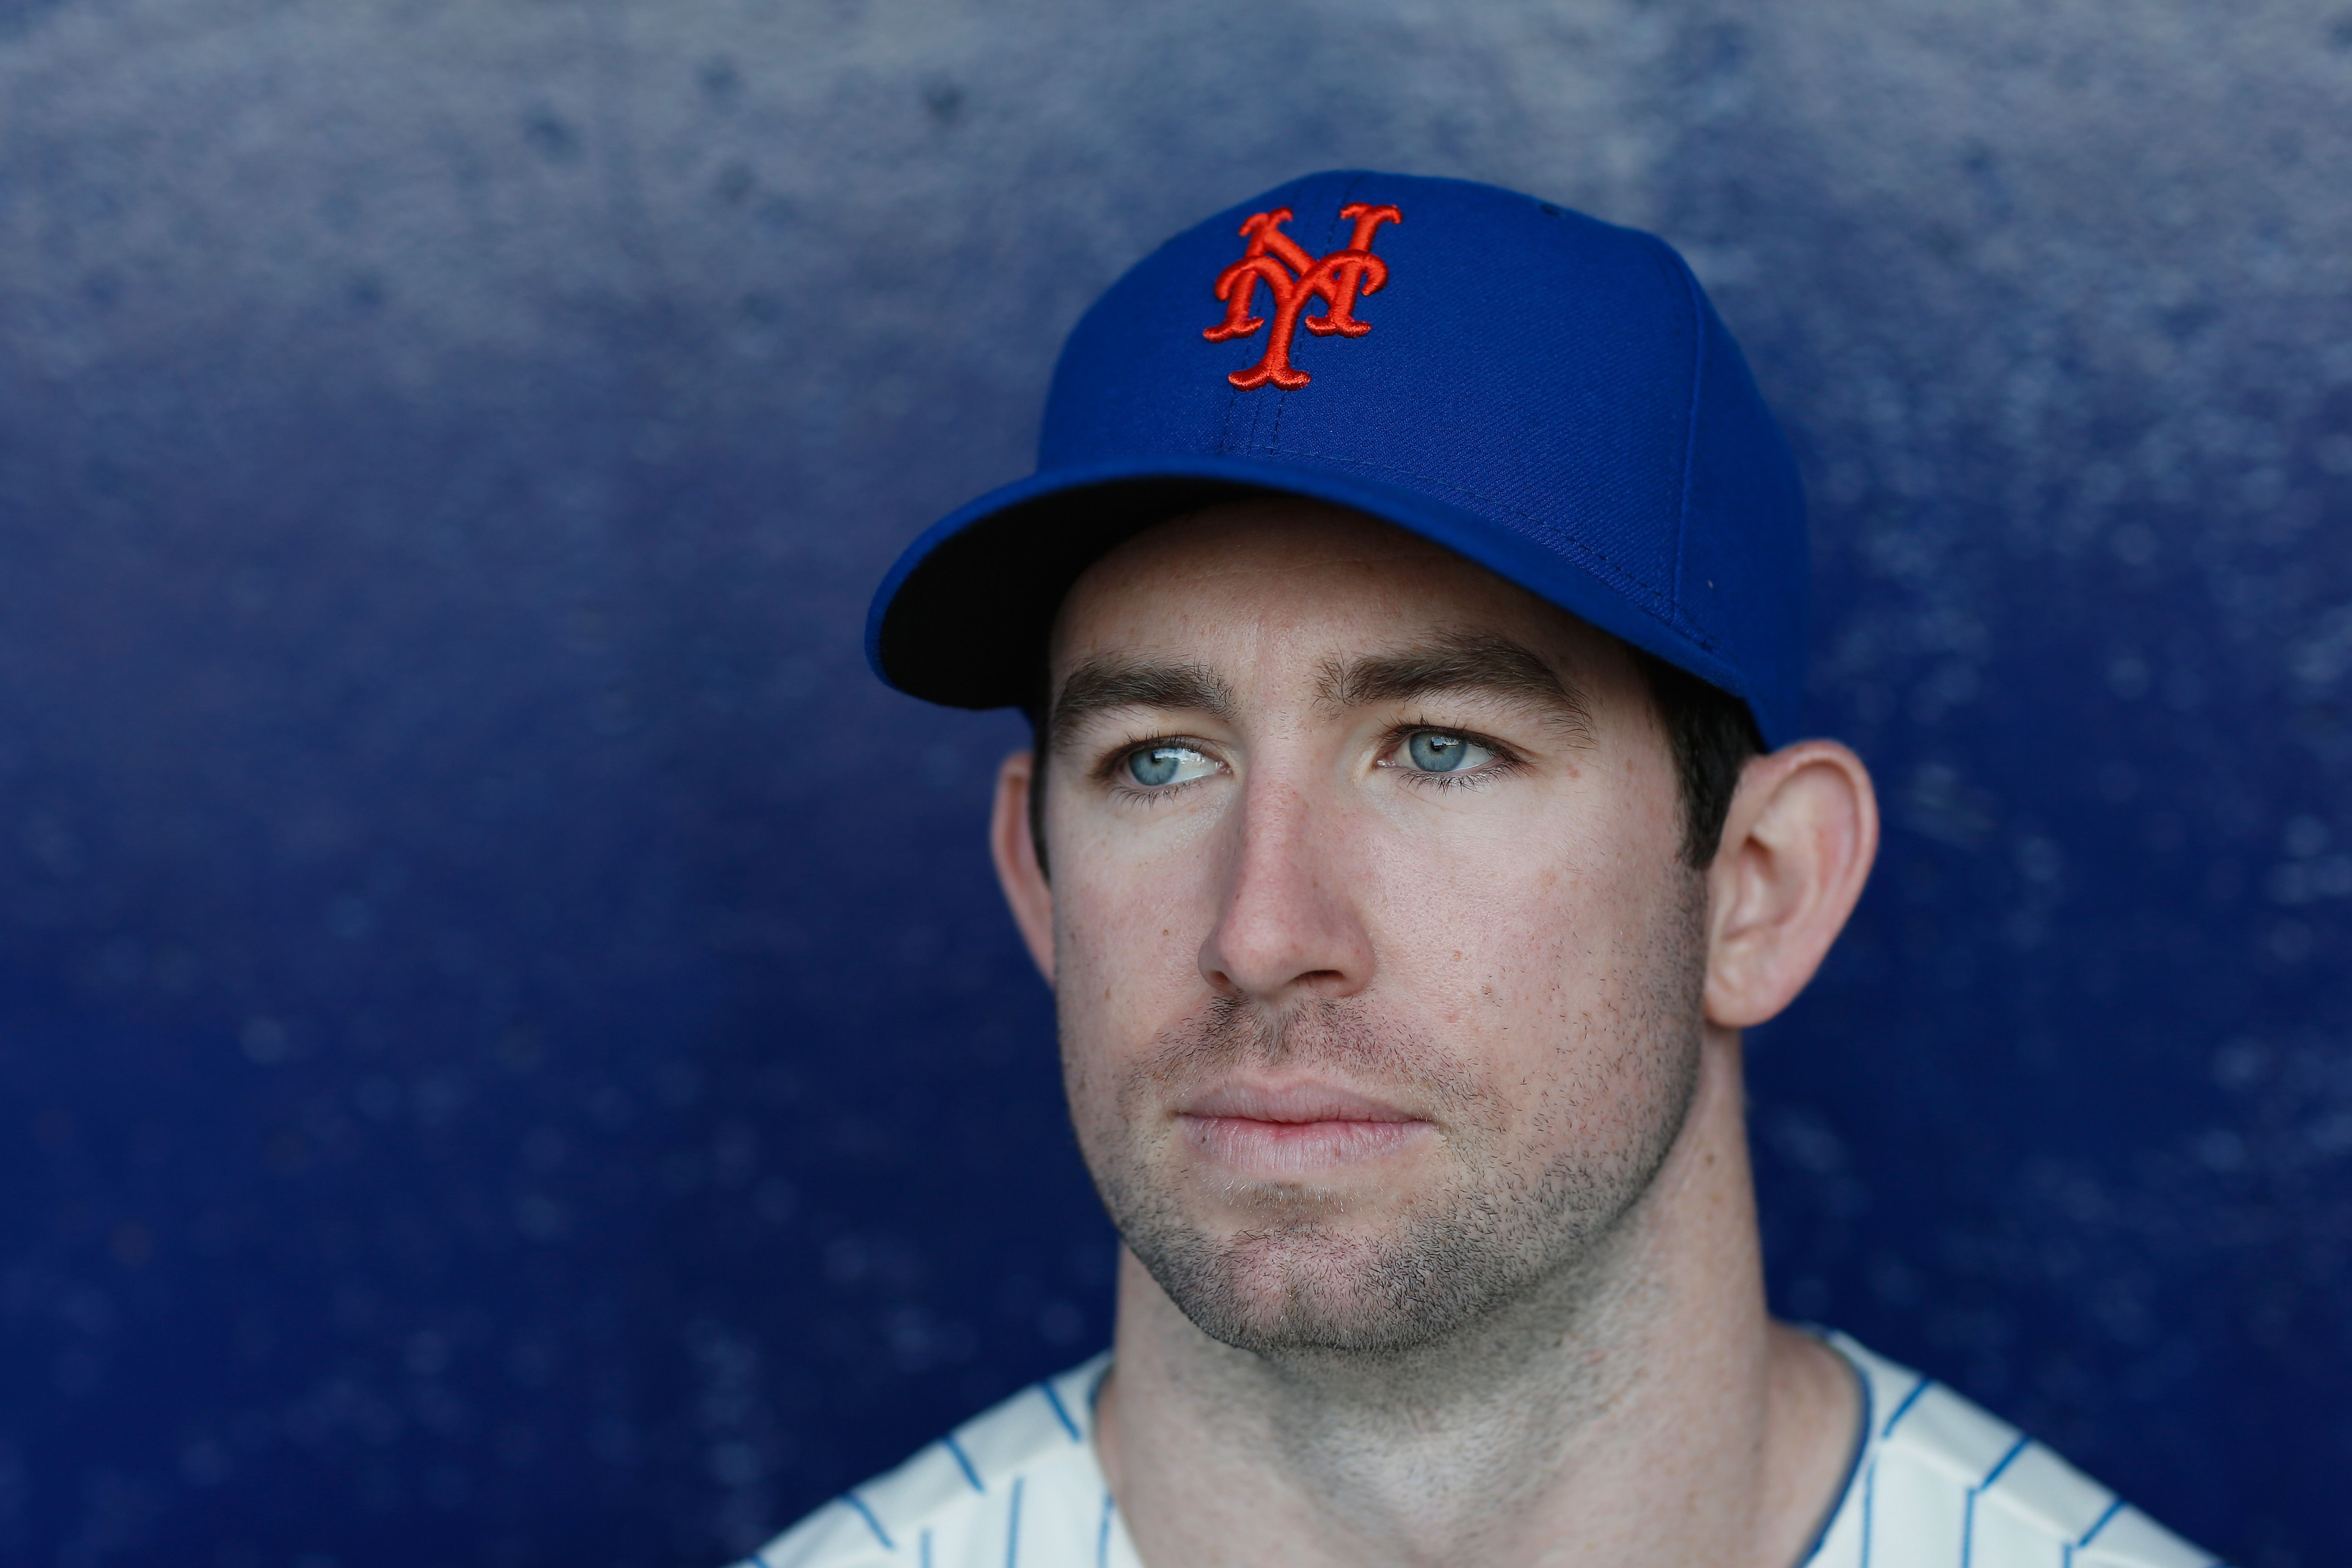 Mike Baxter looks handsome in this up-close picture of him in his baseball outfit.